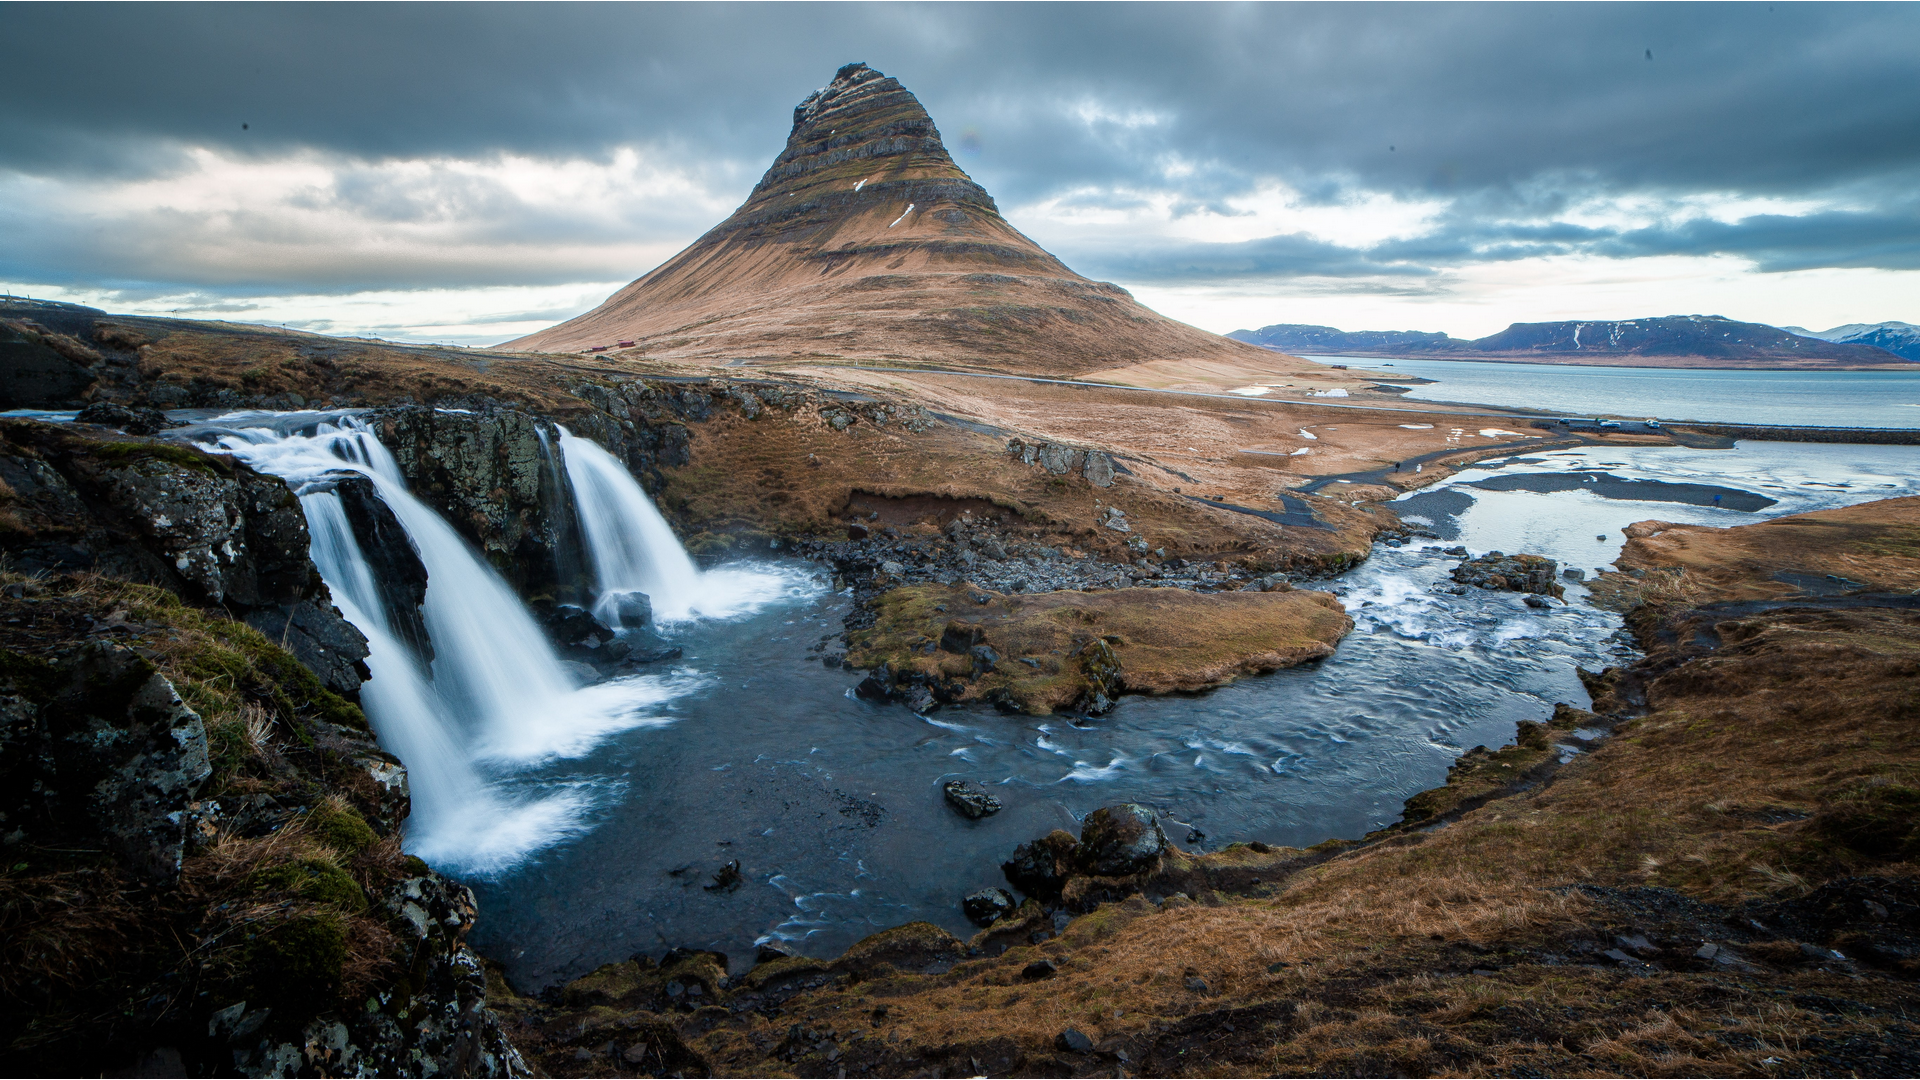 A view in Iceland